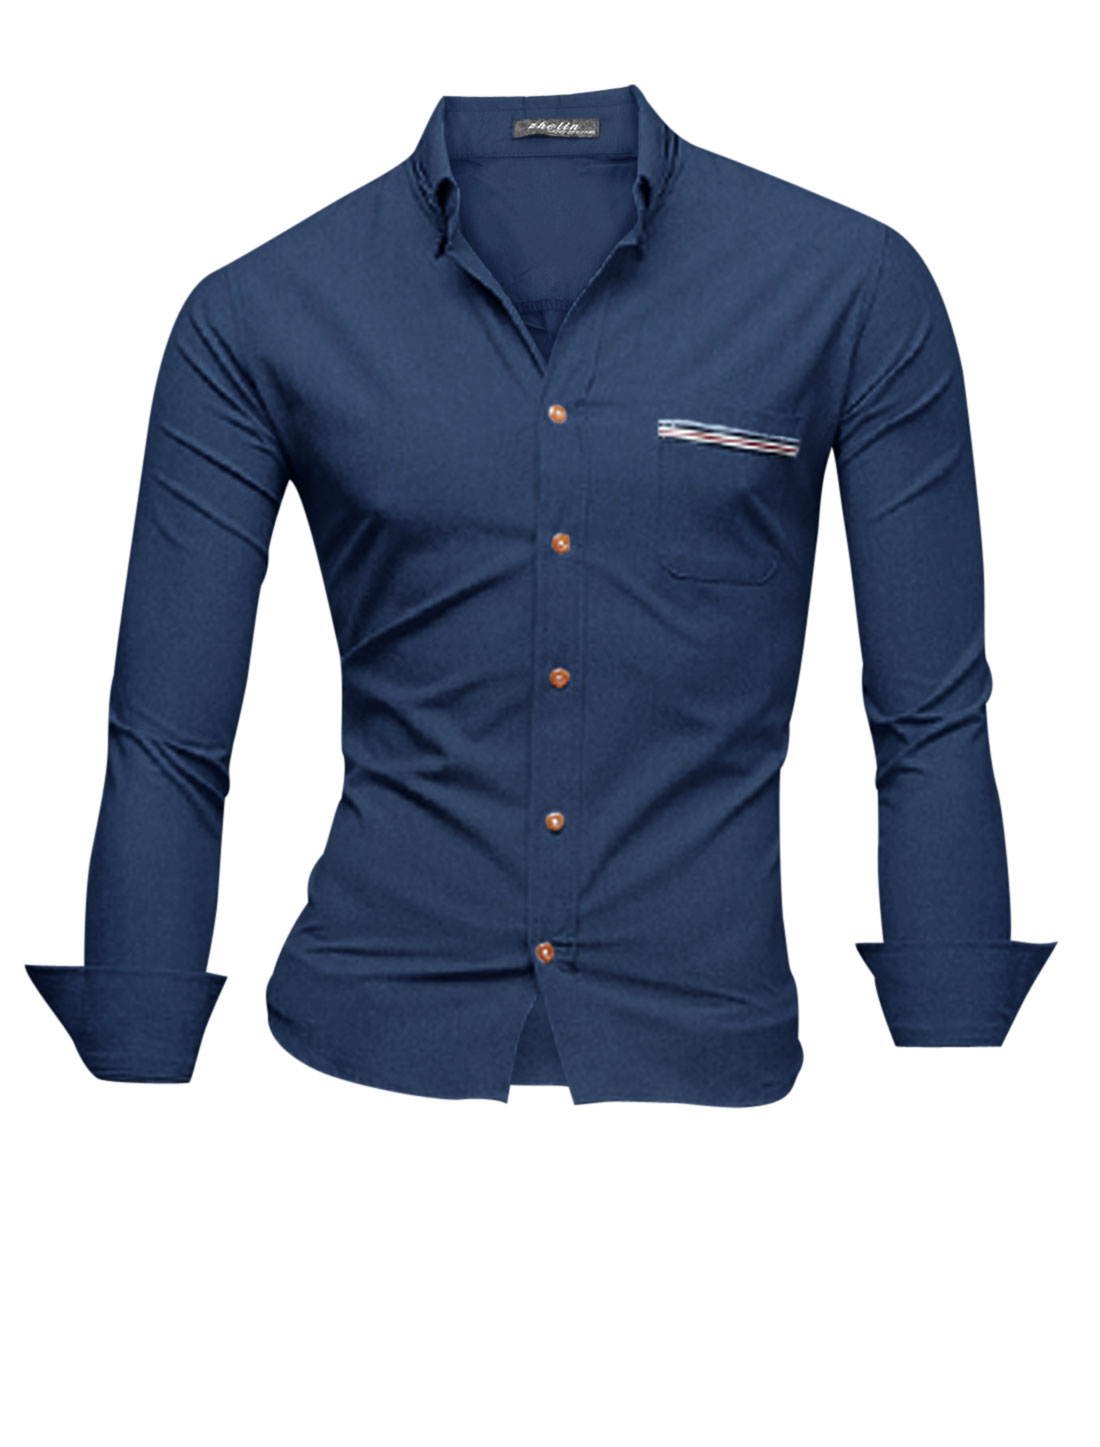 Man Stripes Detail Panel Design Long Sleeves Casual Shirt Navy Blue M